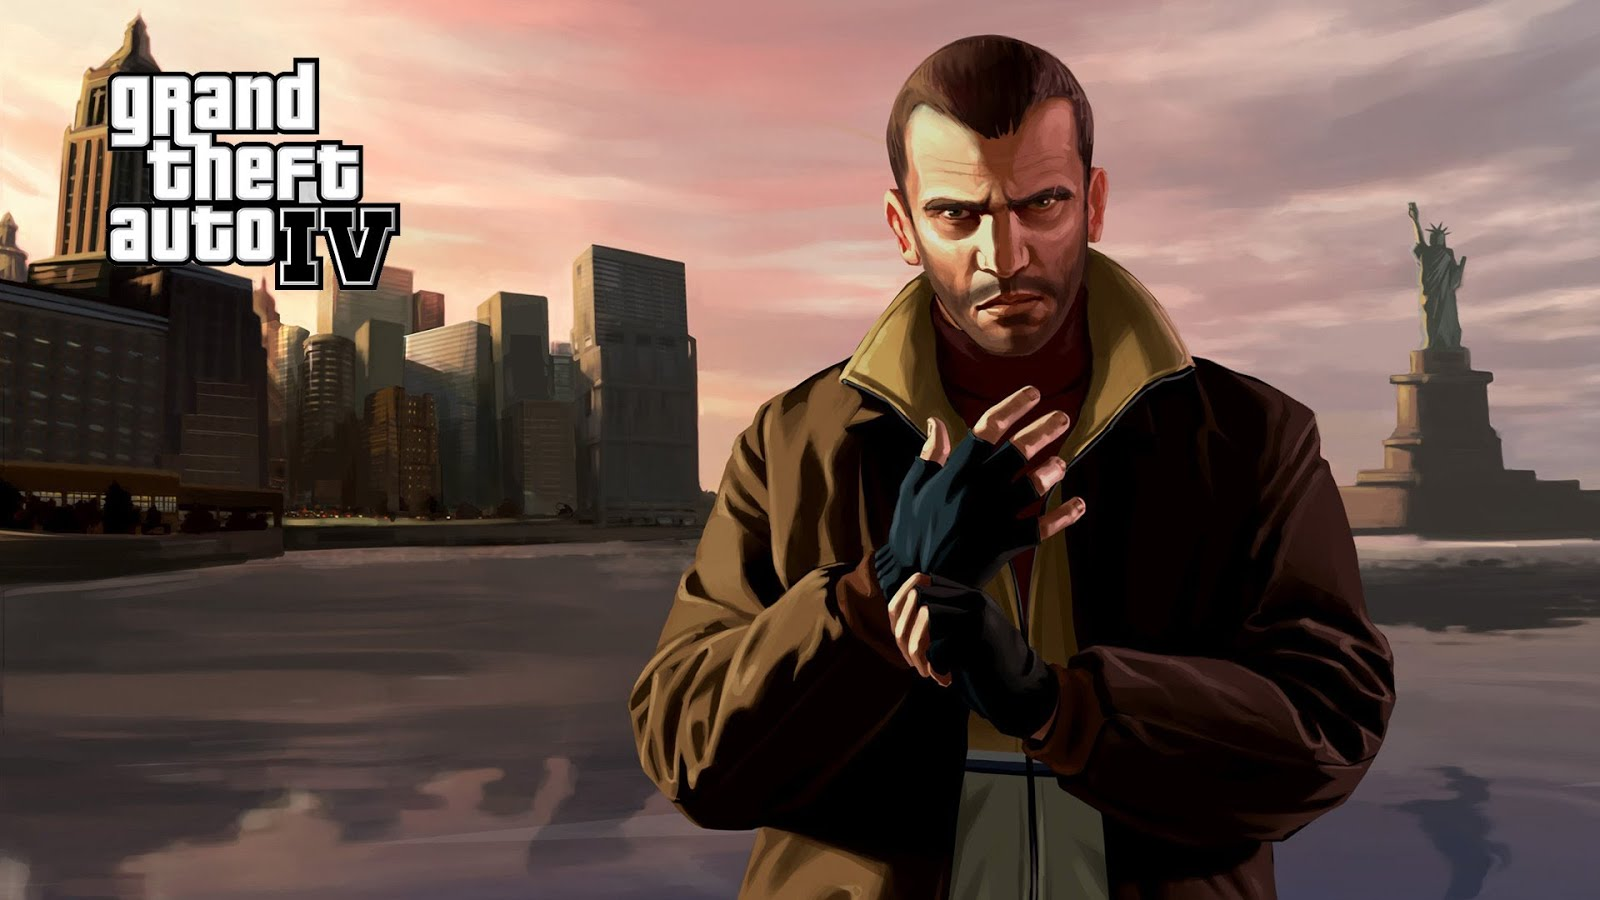 Grand Theft Auto IV v1.1.5 APK